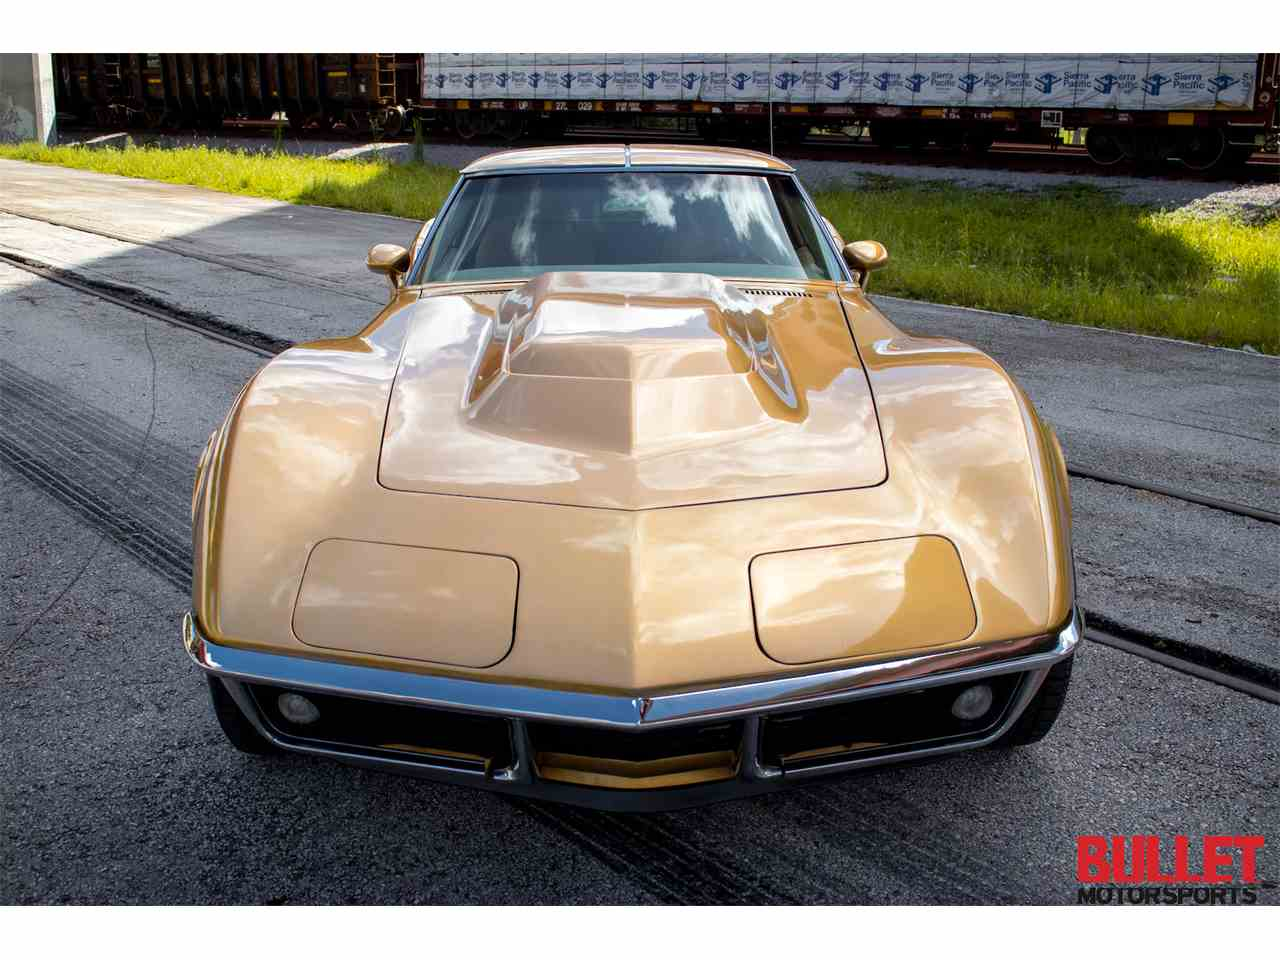 Large Picture of Classic 1969 Corvette located in Fort Lauderdale Florida - $24,000.00 - LS2F